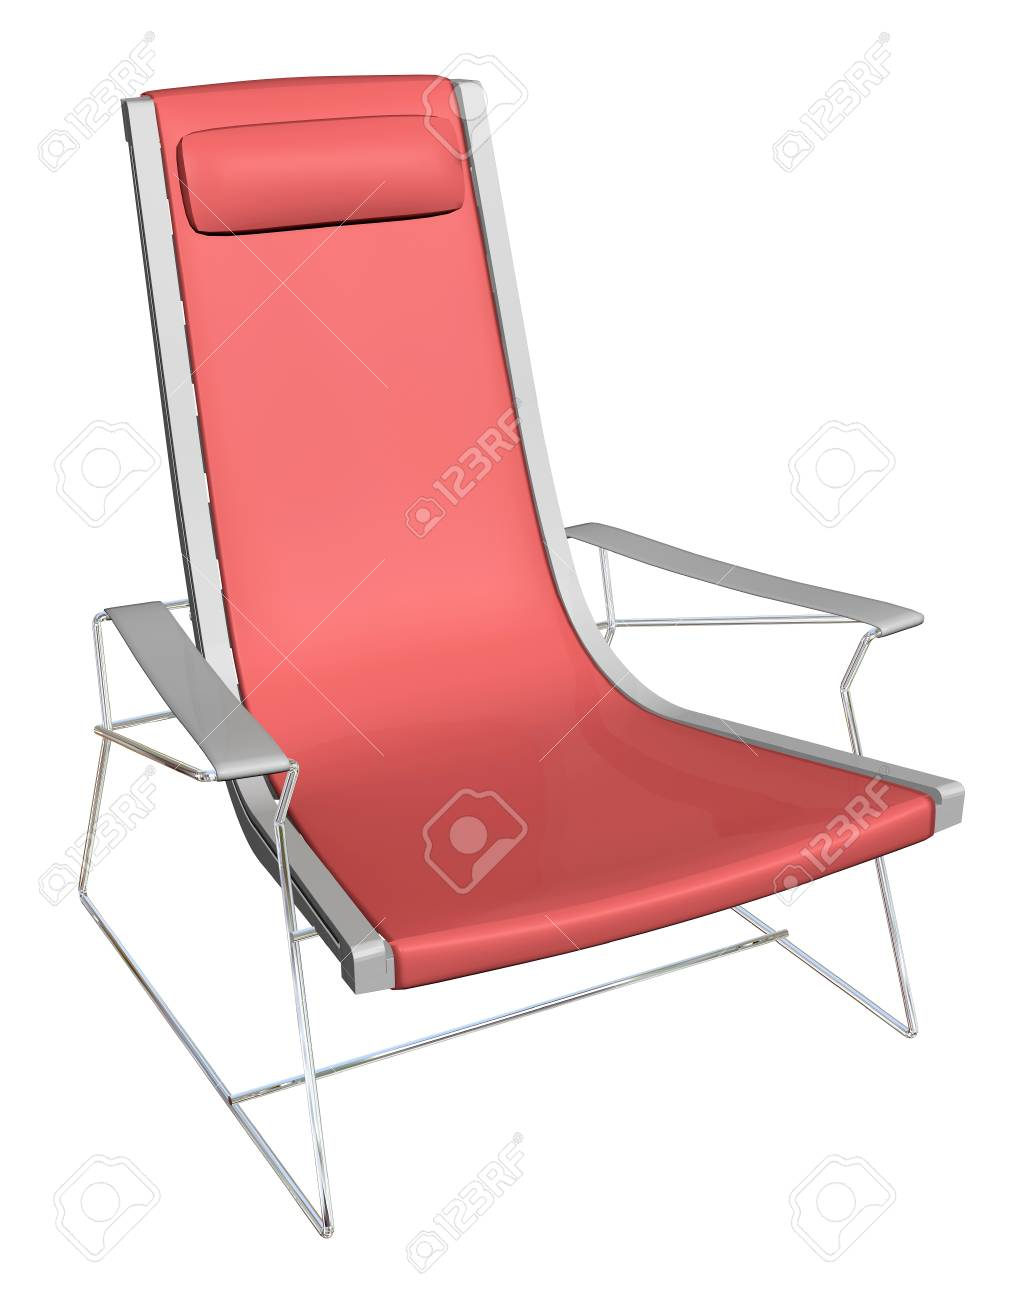 Sessel In Rot Stock Photo